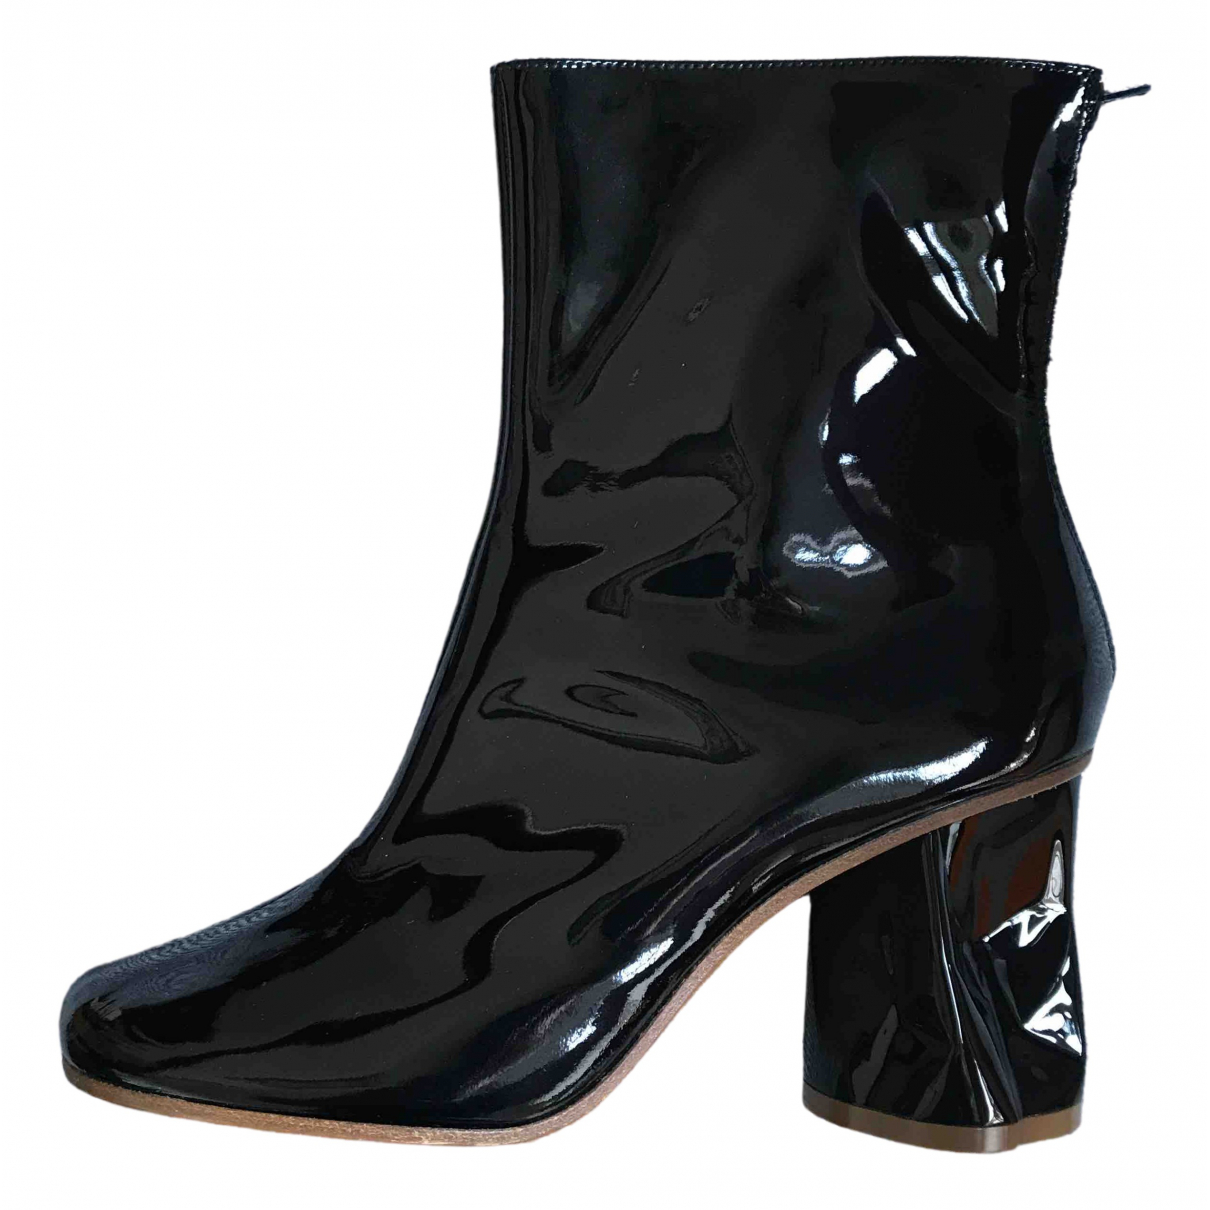 Maison Martin Margiela \N Black Patent leather Ankle boots for Women 37 EU